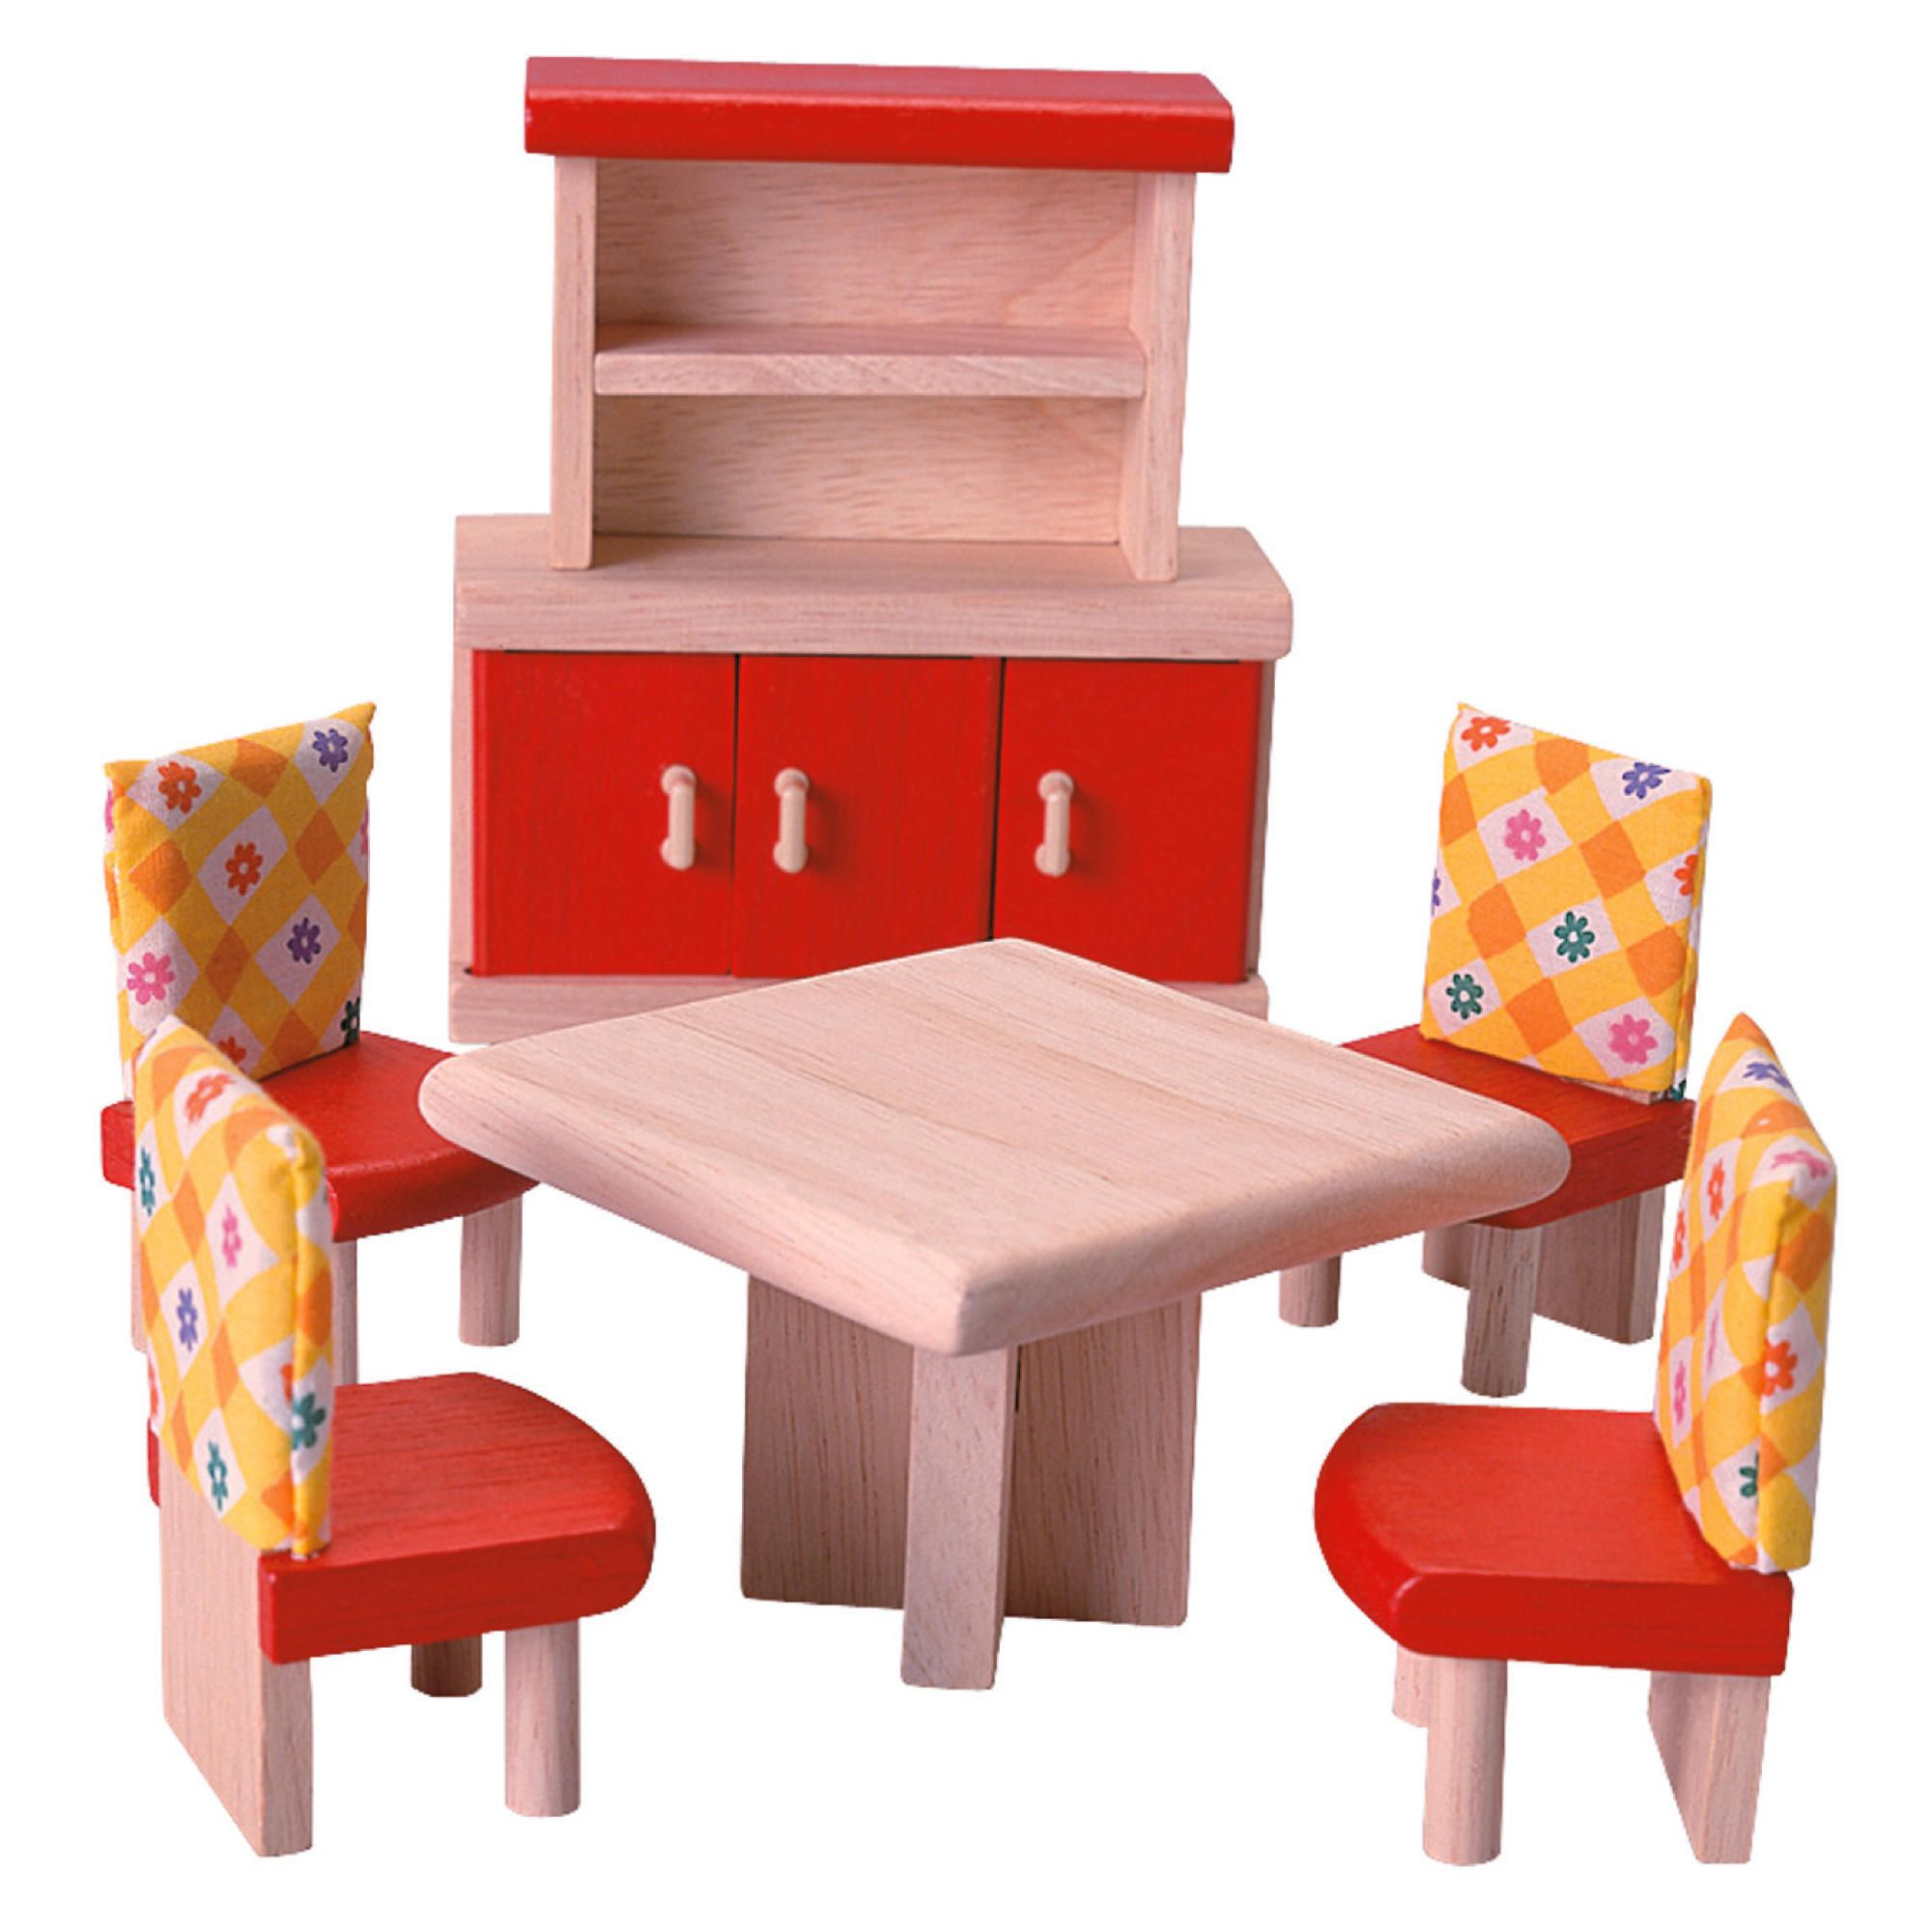 Superb img of Plan Toys Dining Room Neo Dolls House Wooden Toy Furniture Set with #C77804 color and 2000x2000 pixels